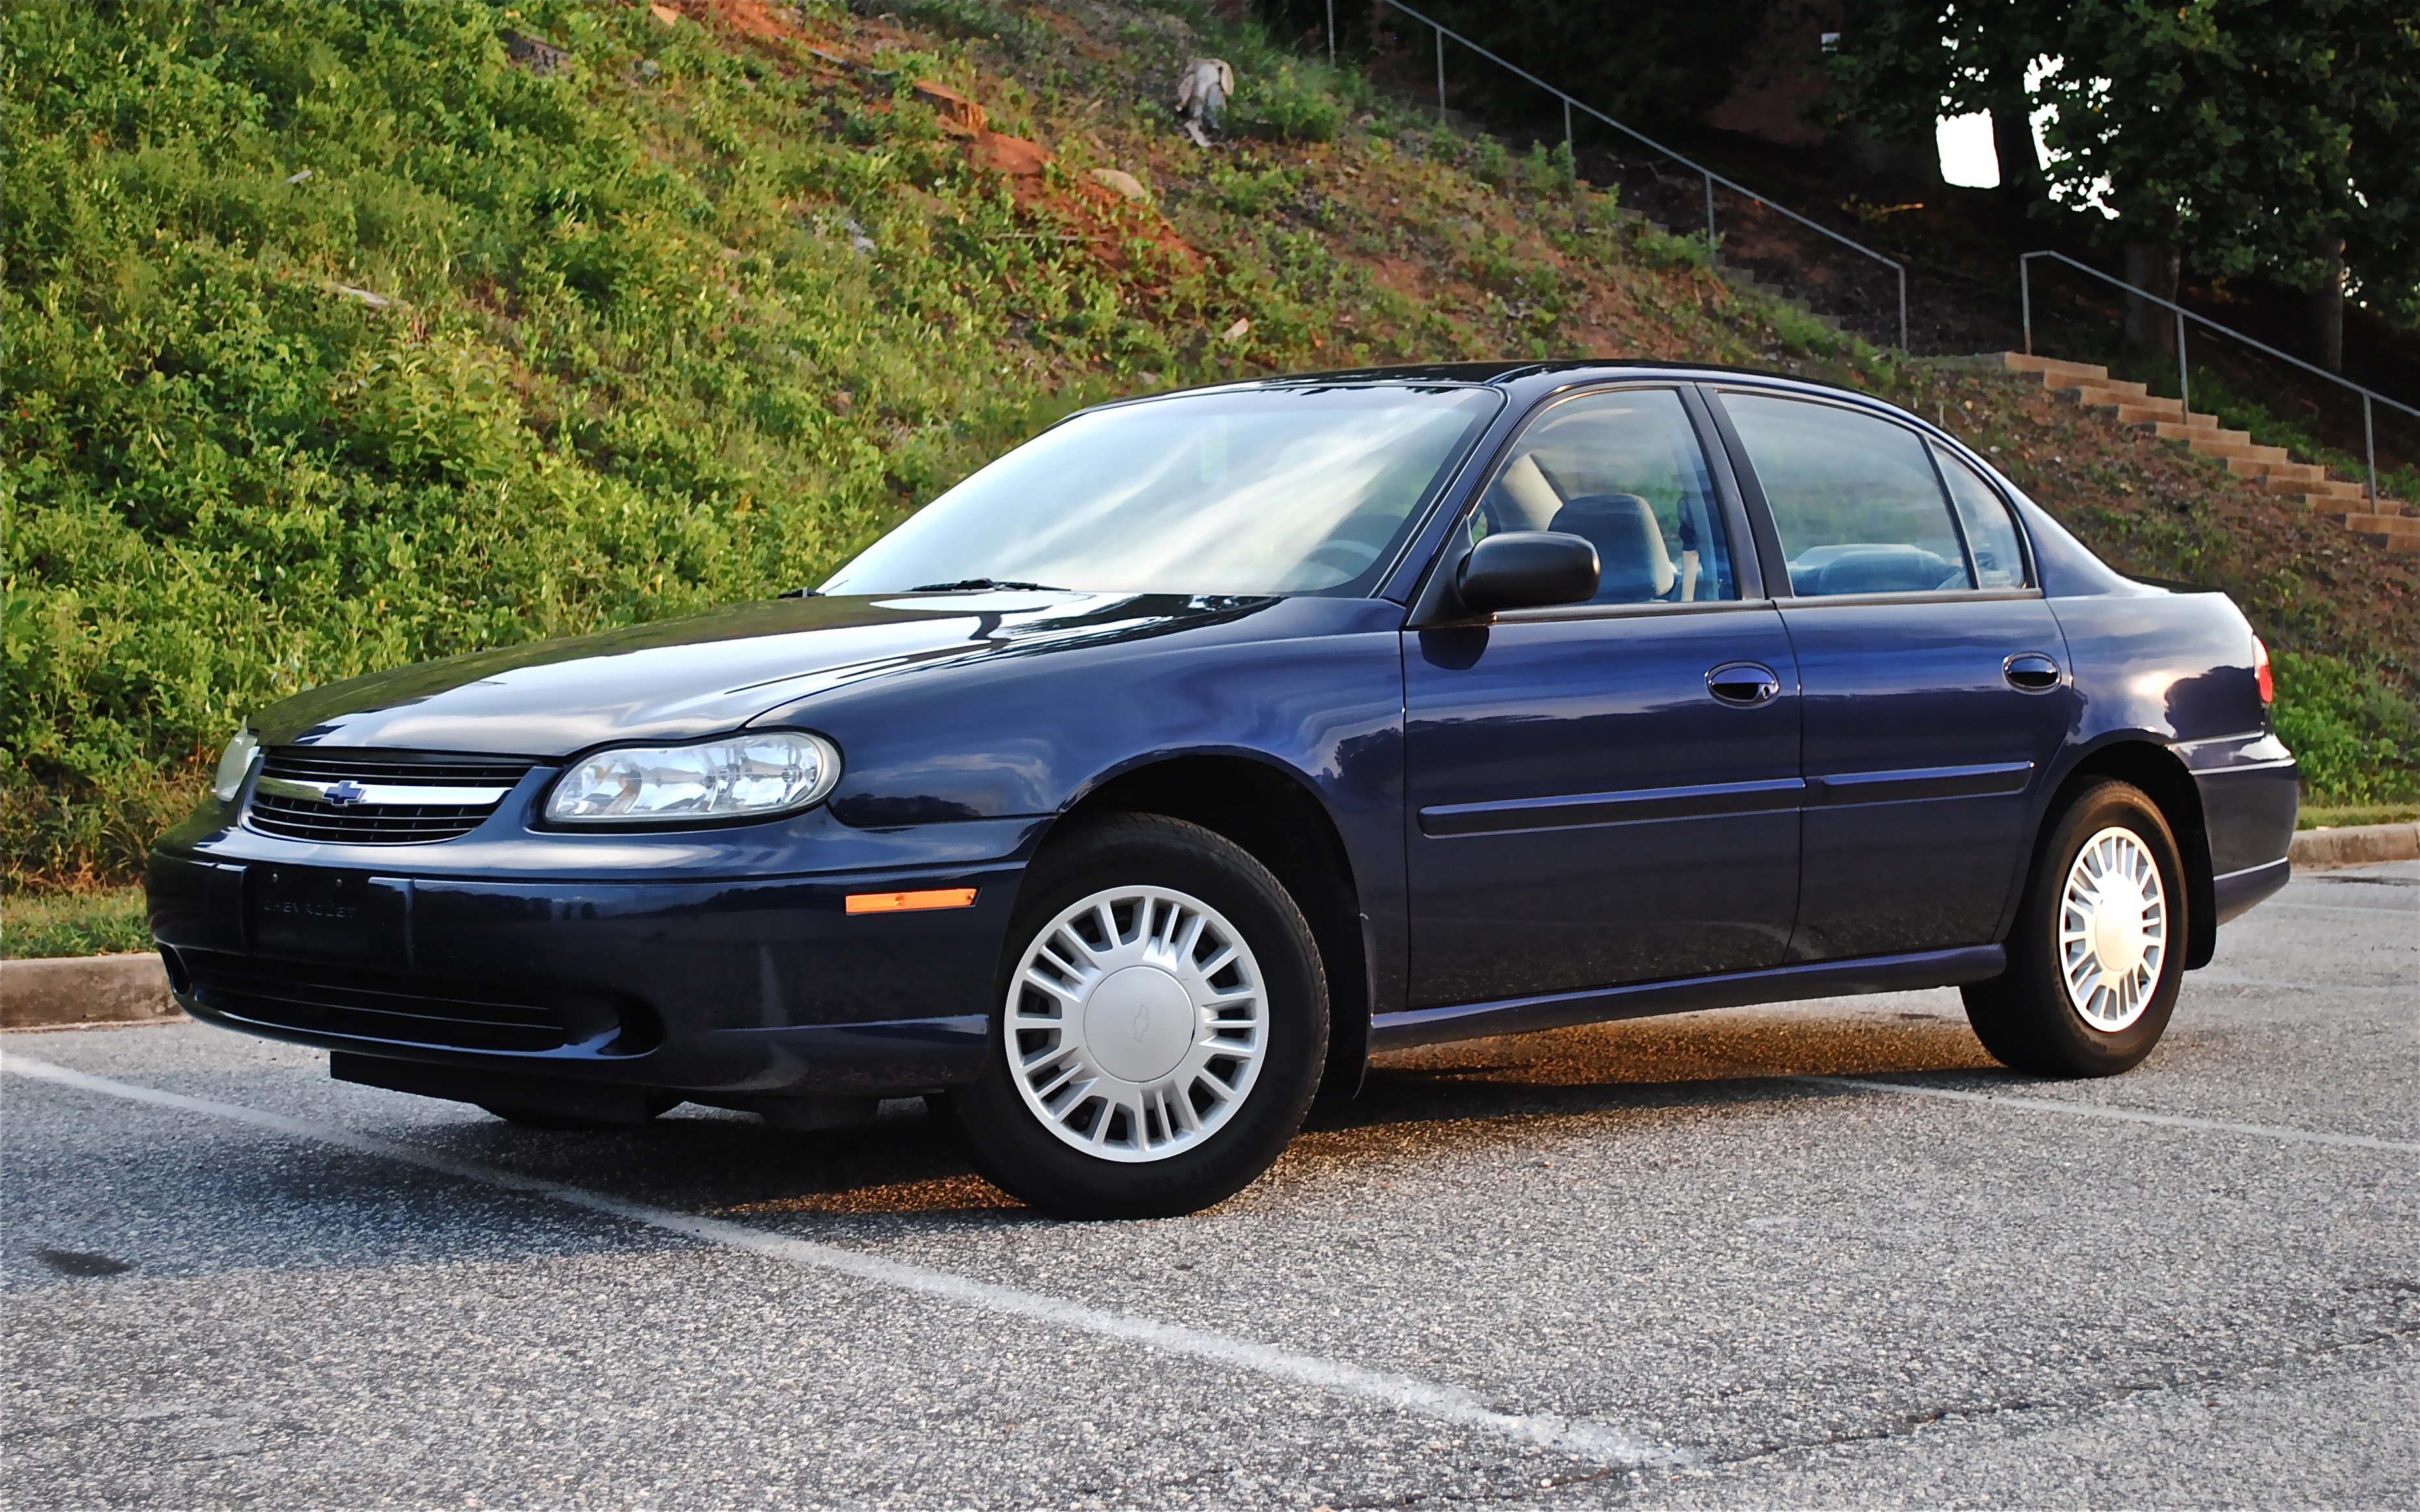 Chevy Malibu 1997 manual